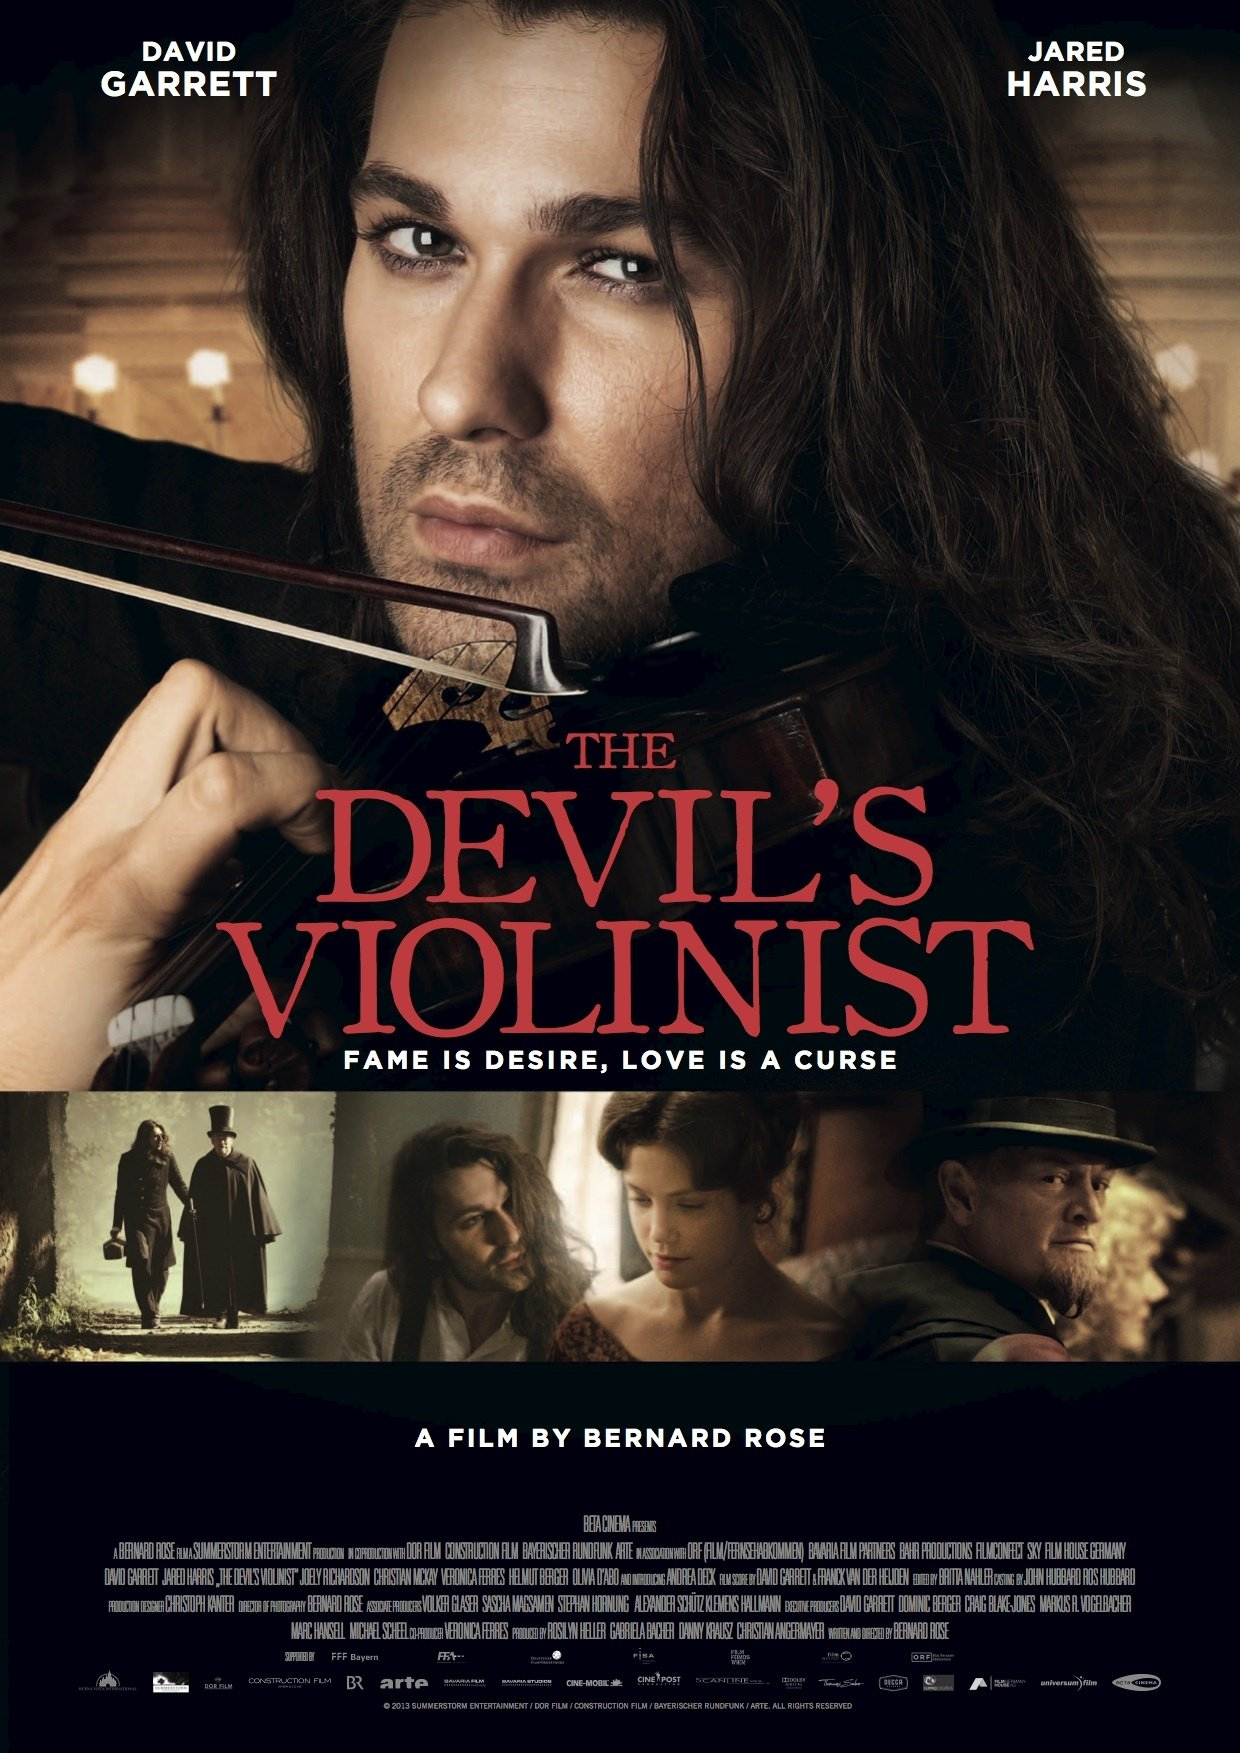 The Devil's Violinist (2013) Technical Specifications